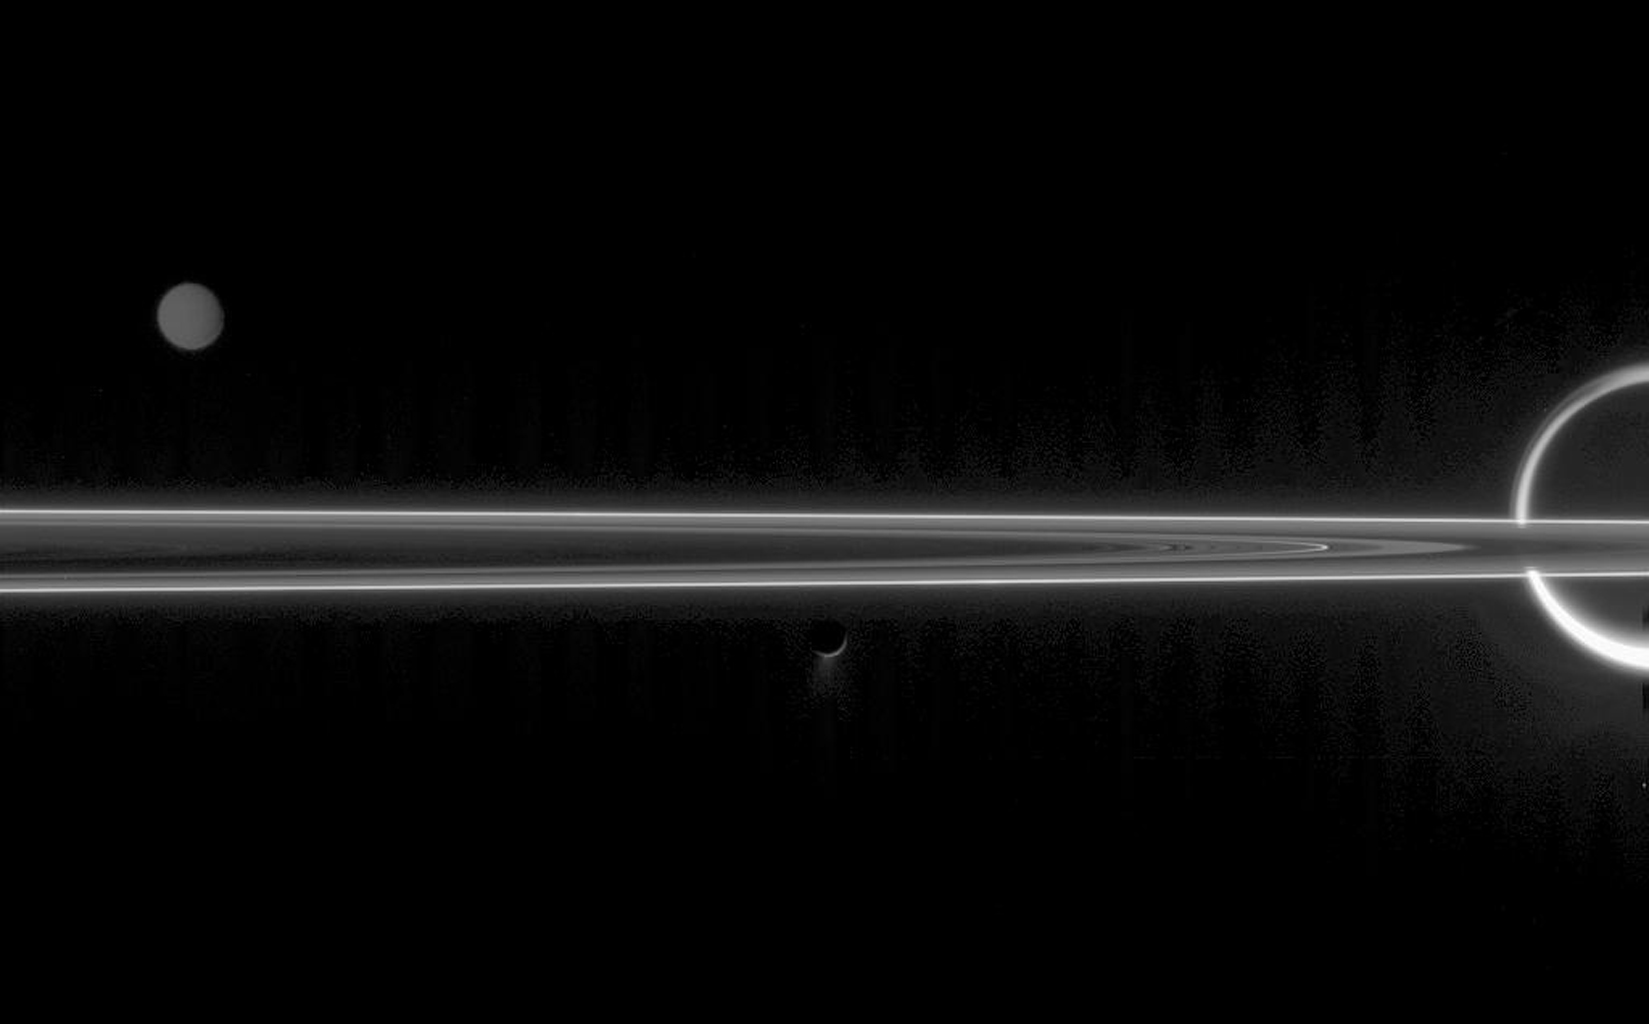 The real jewels of Saturn are arguably its stunning collection of icy moons. Seen here with the unlit side of the rings are Titan, Tethys and Enceladus with its fountain-like geysers. This image was captured by NASA's Cassini spacecraft.